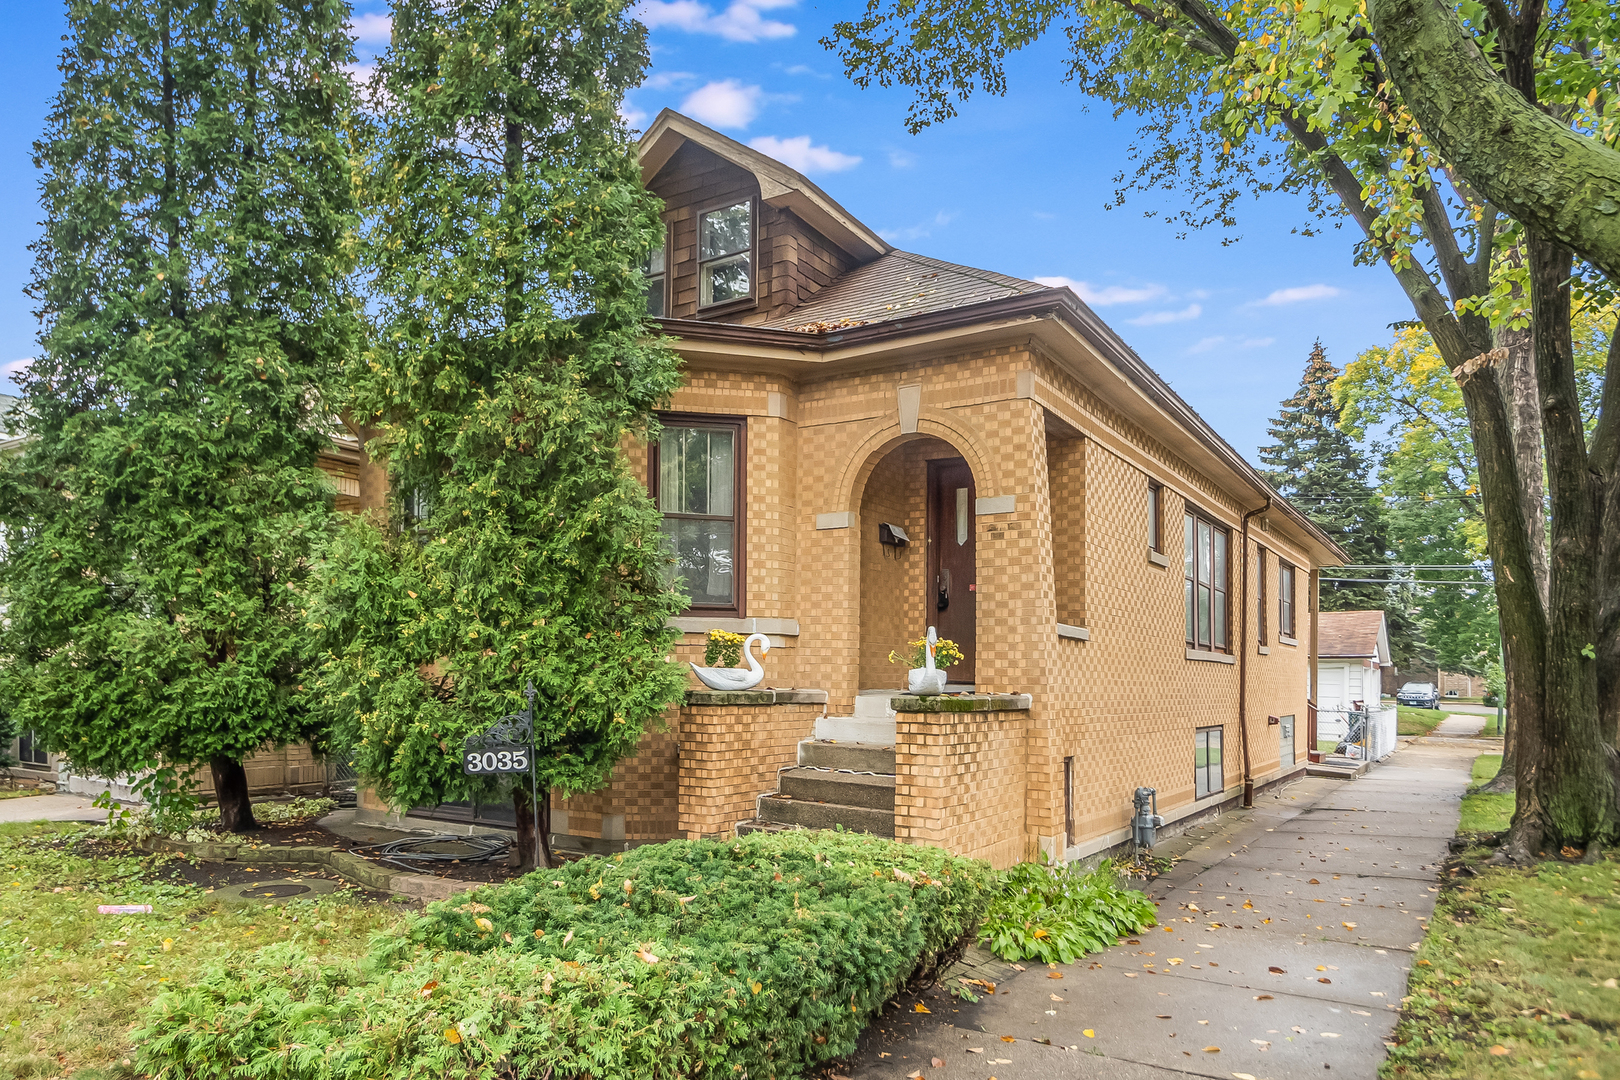 3035 N Lowell Avenue, Chicago, IL 60641